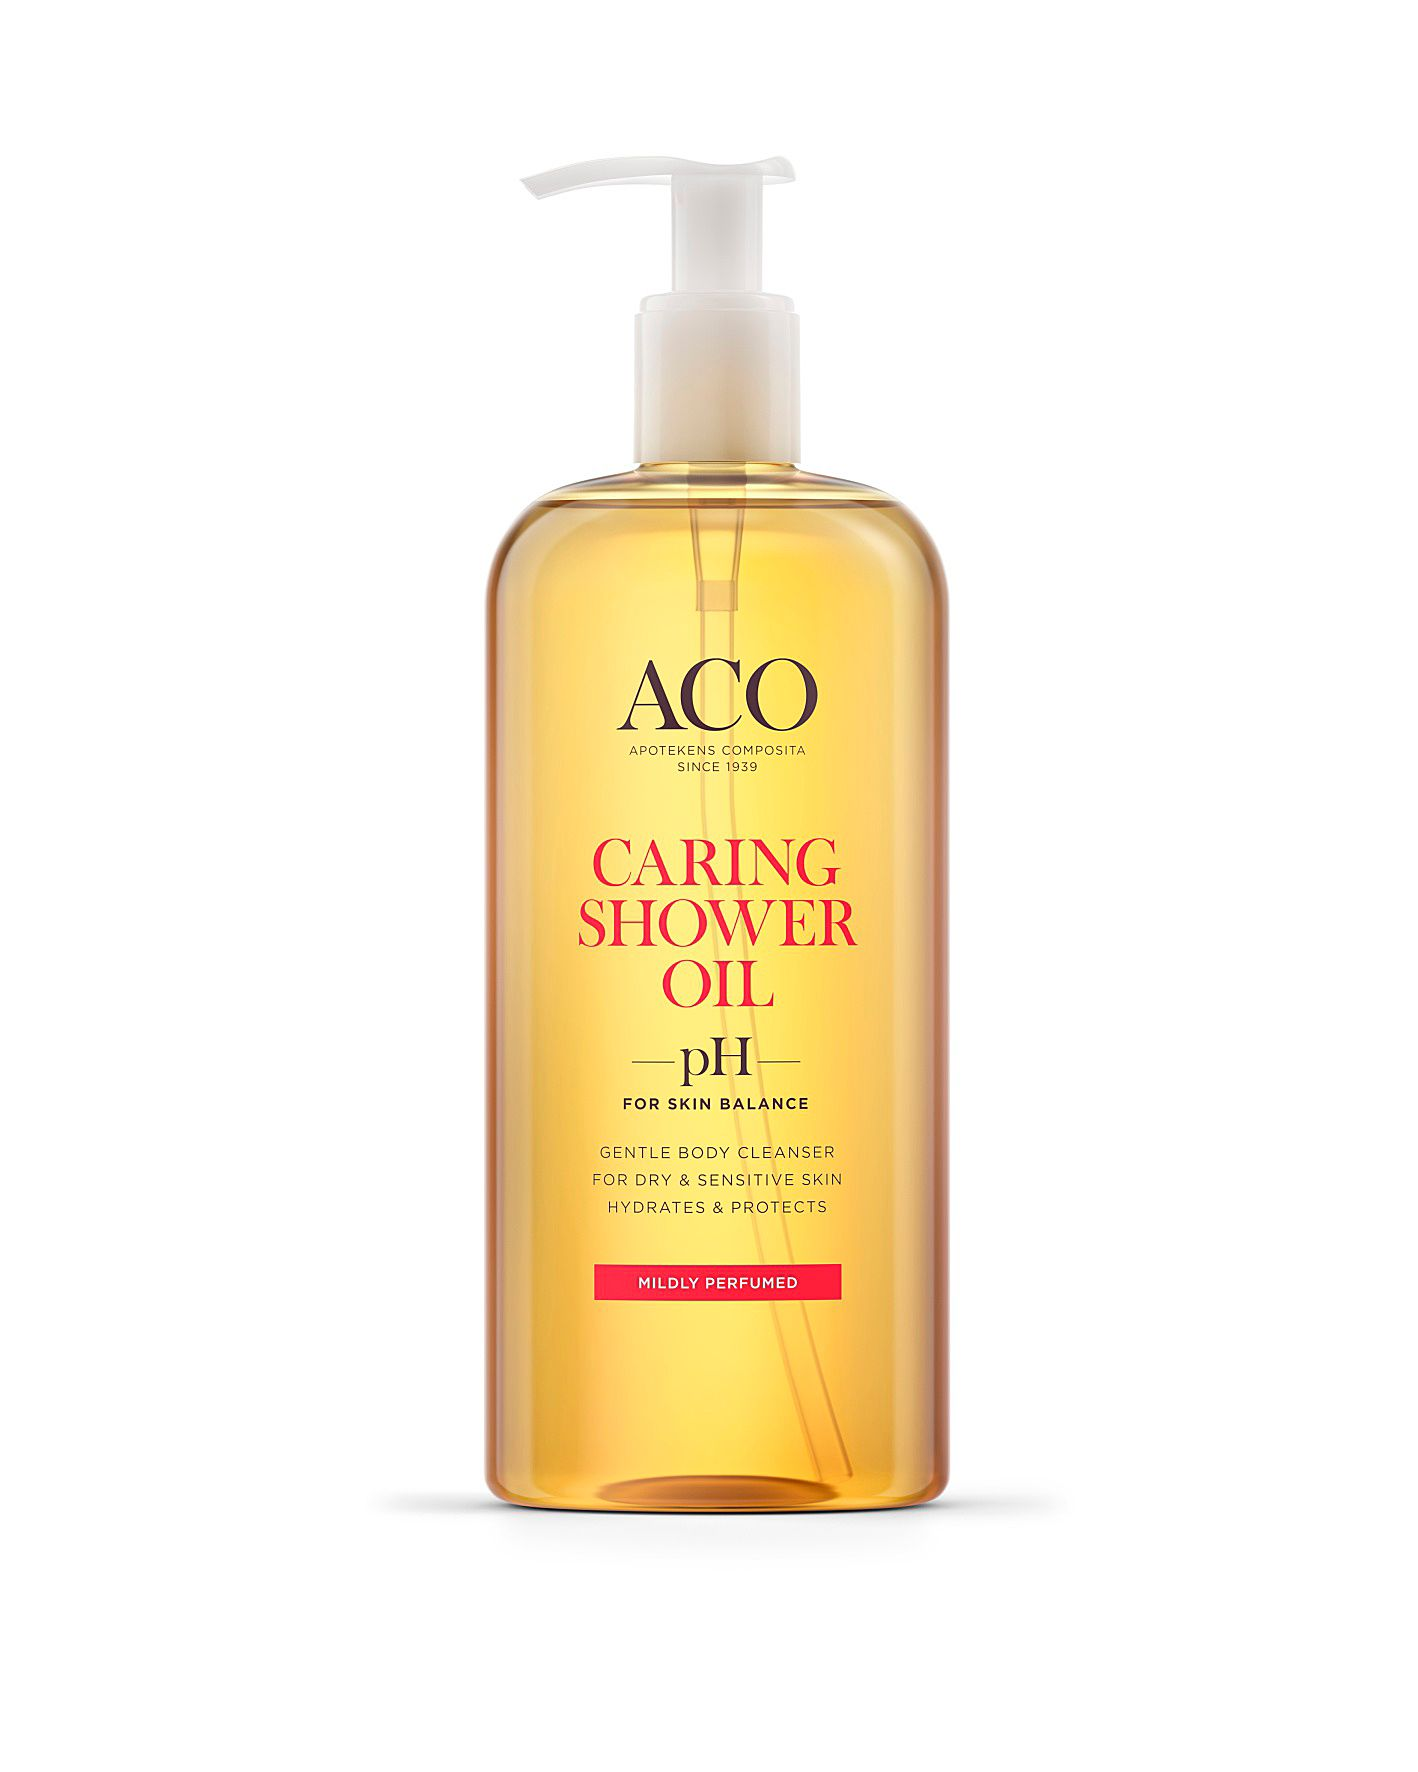 ACO Caring Shower Oil, ­hajustettu, 400 ml 12,20 e